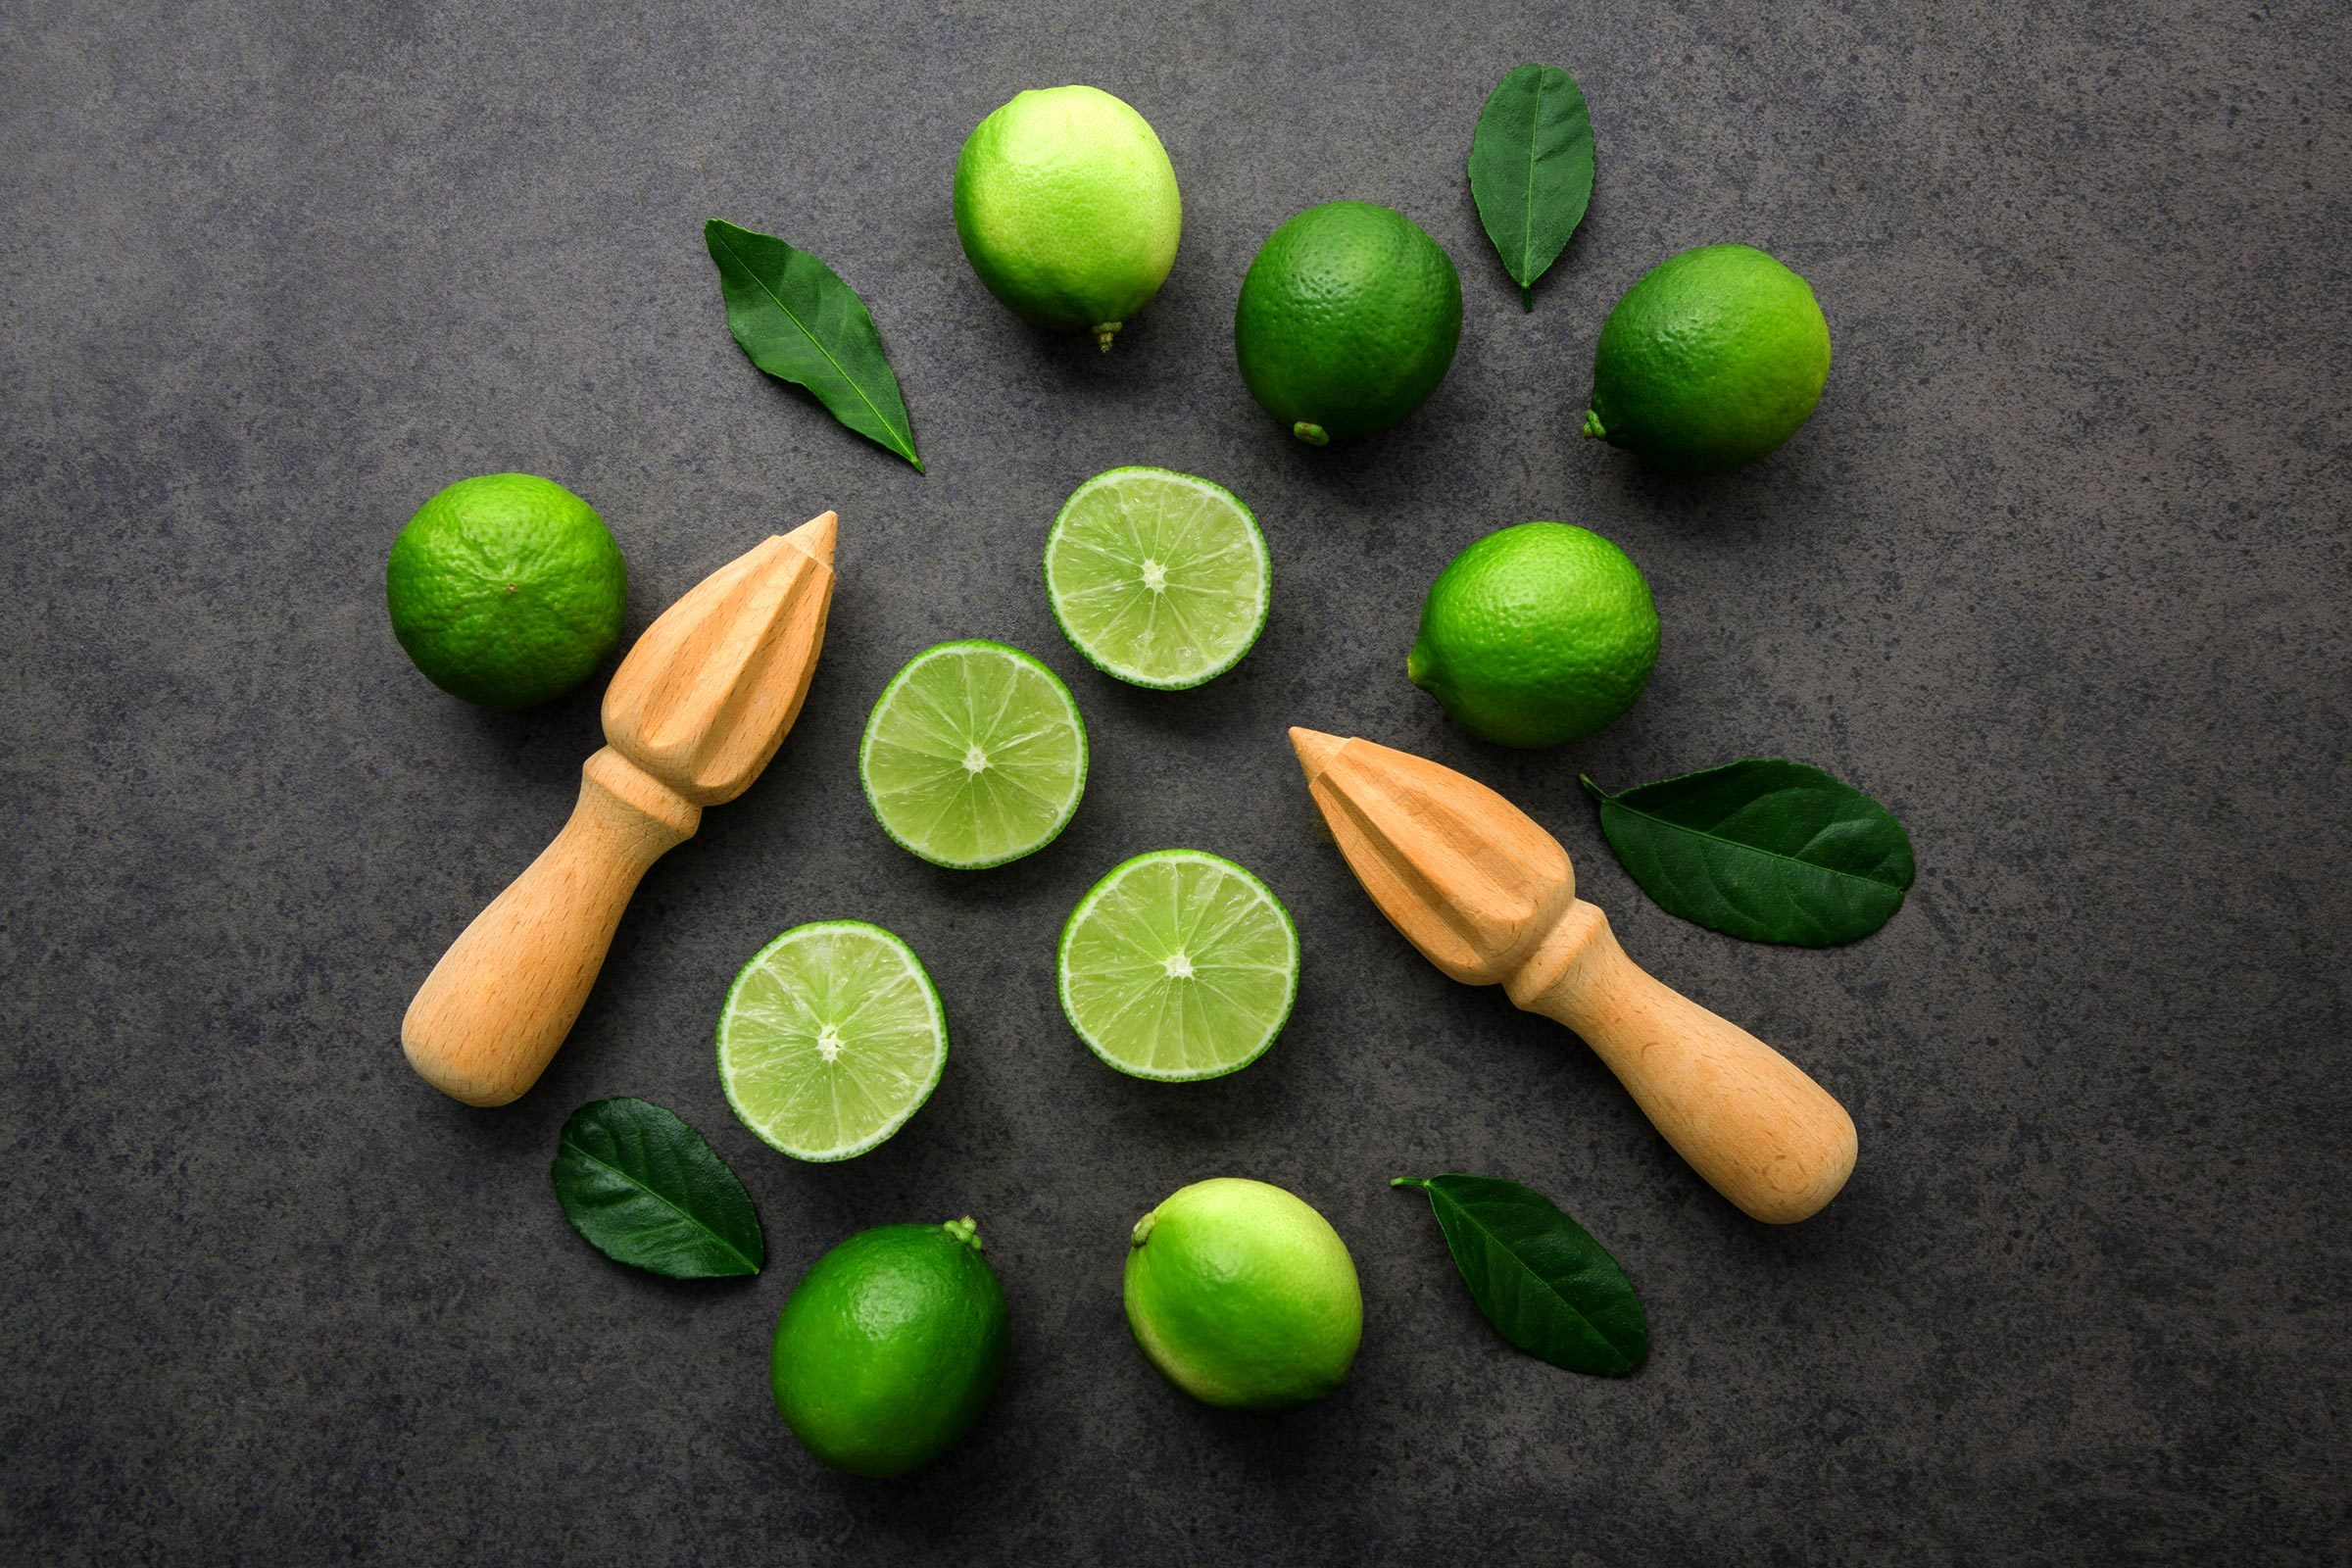 Fresh limes and wooden juicer